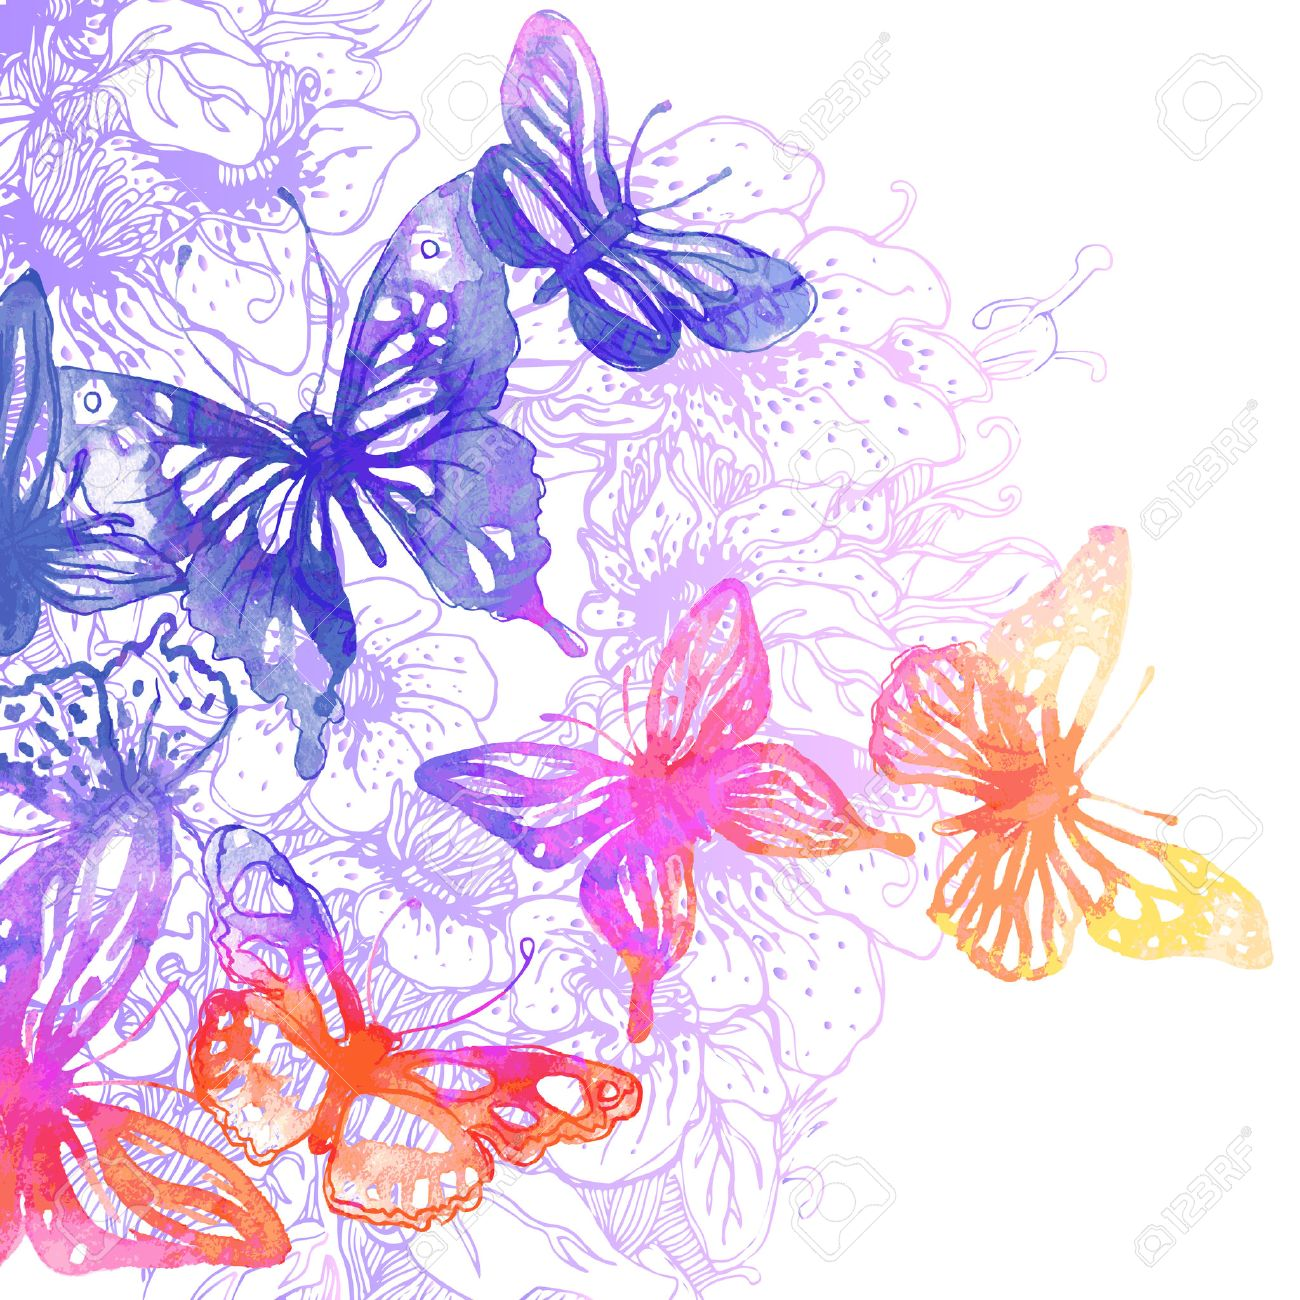 amazing background with butterflies and flowers painted with